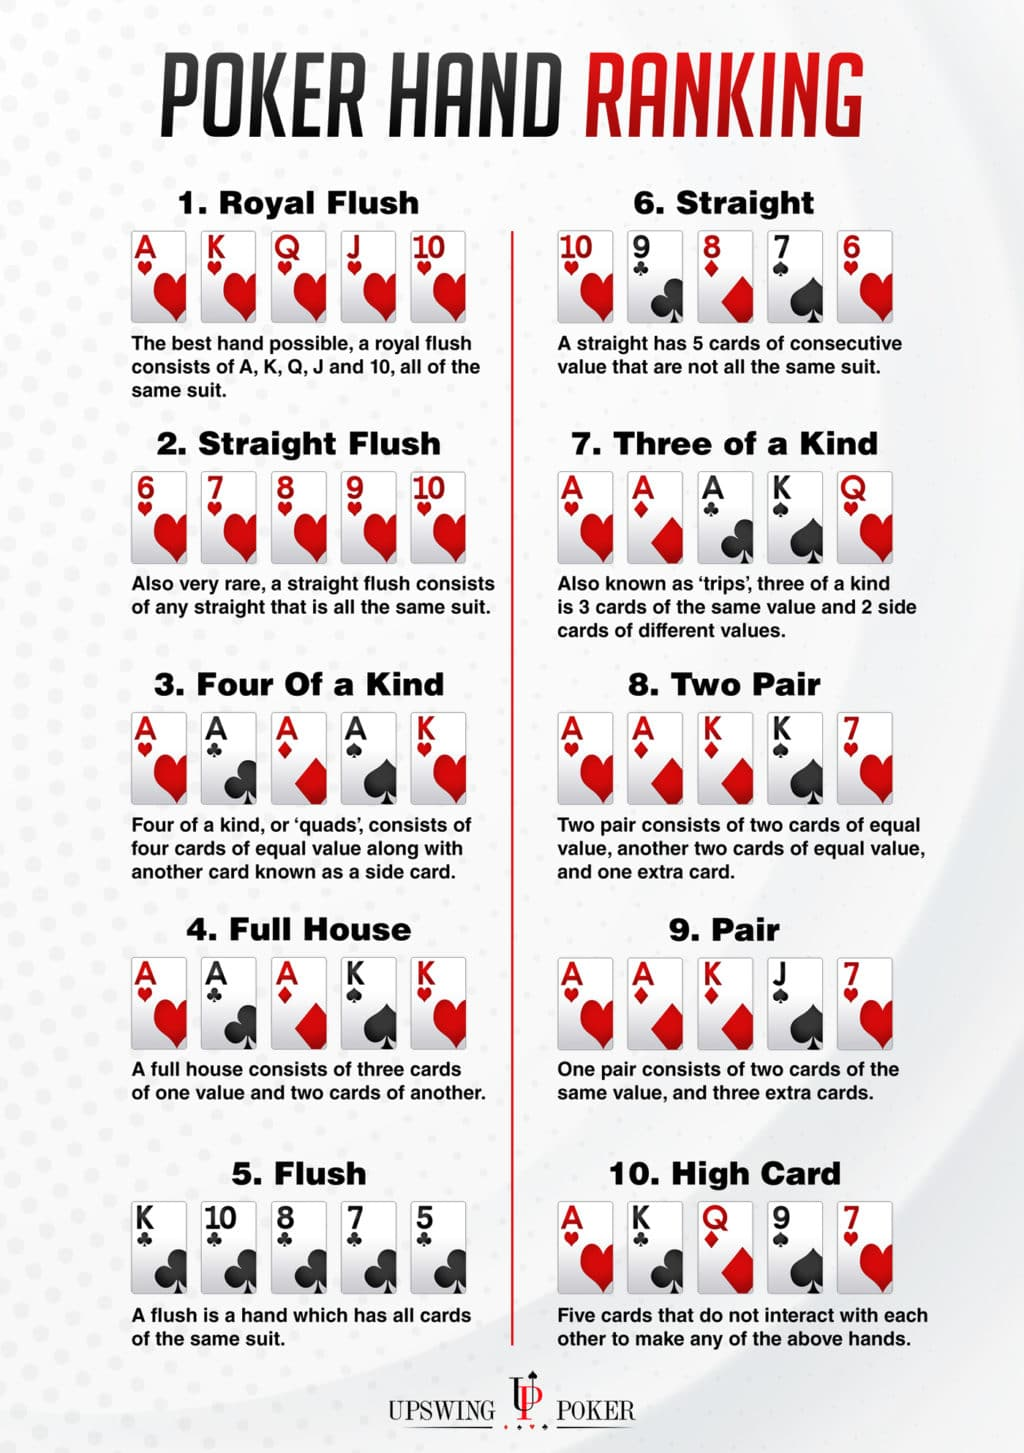 Poker Rules What Beats What